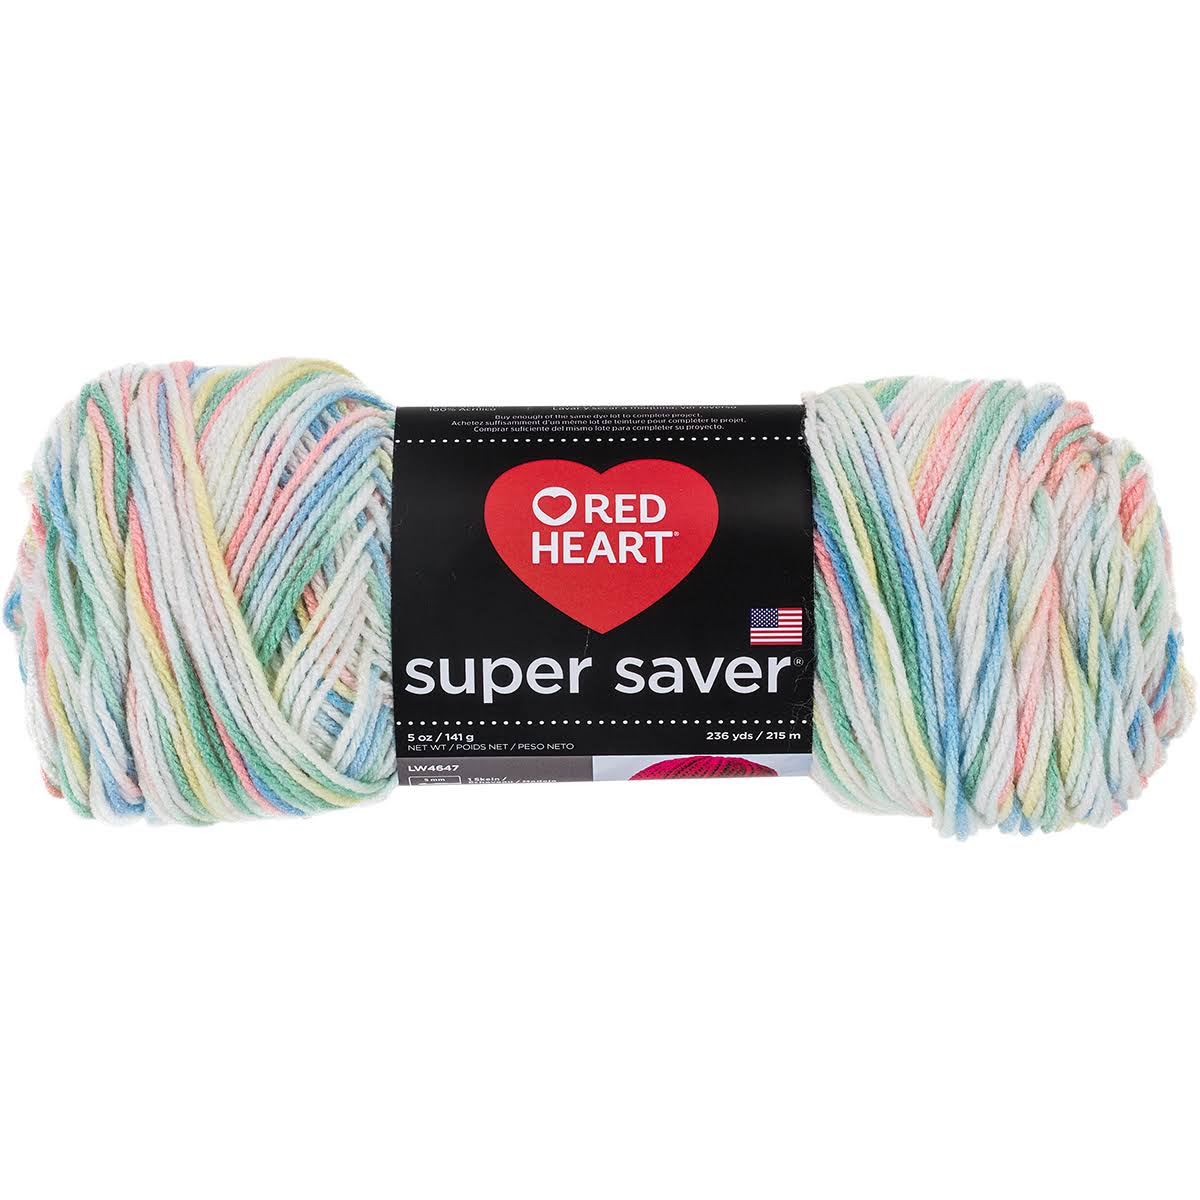 Red Heart Super Saver Multicolored Yarn Lovey - 5oz